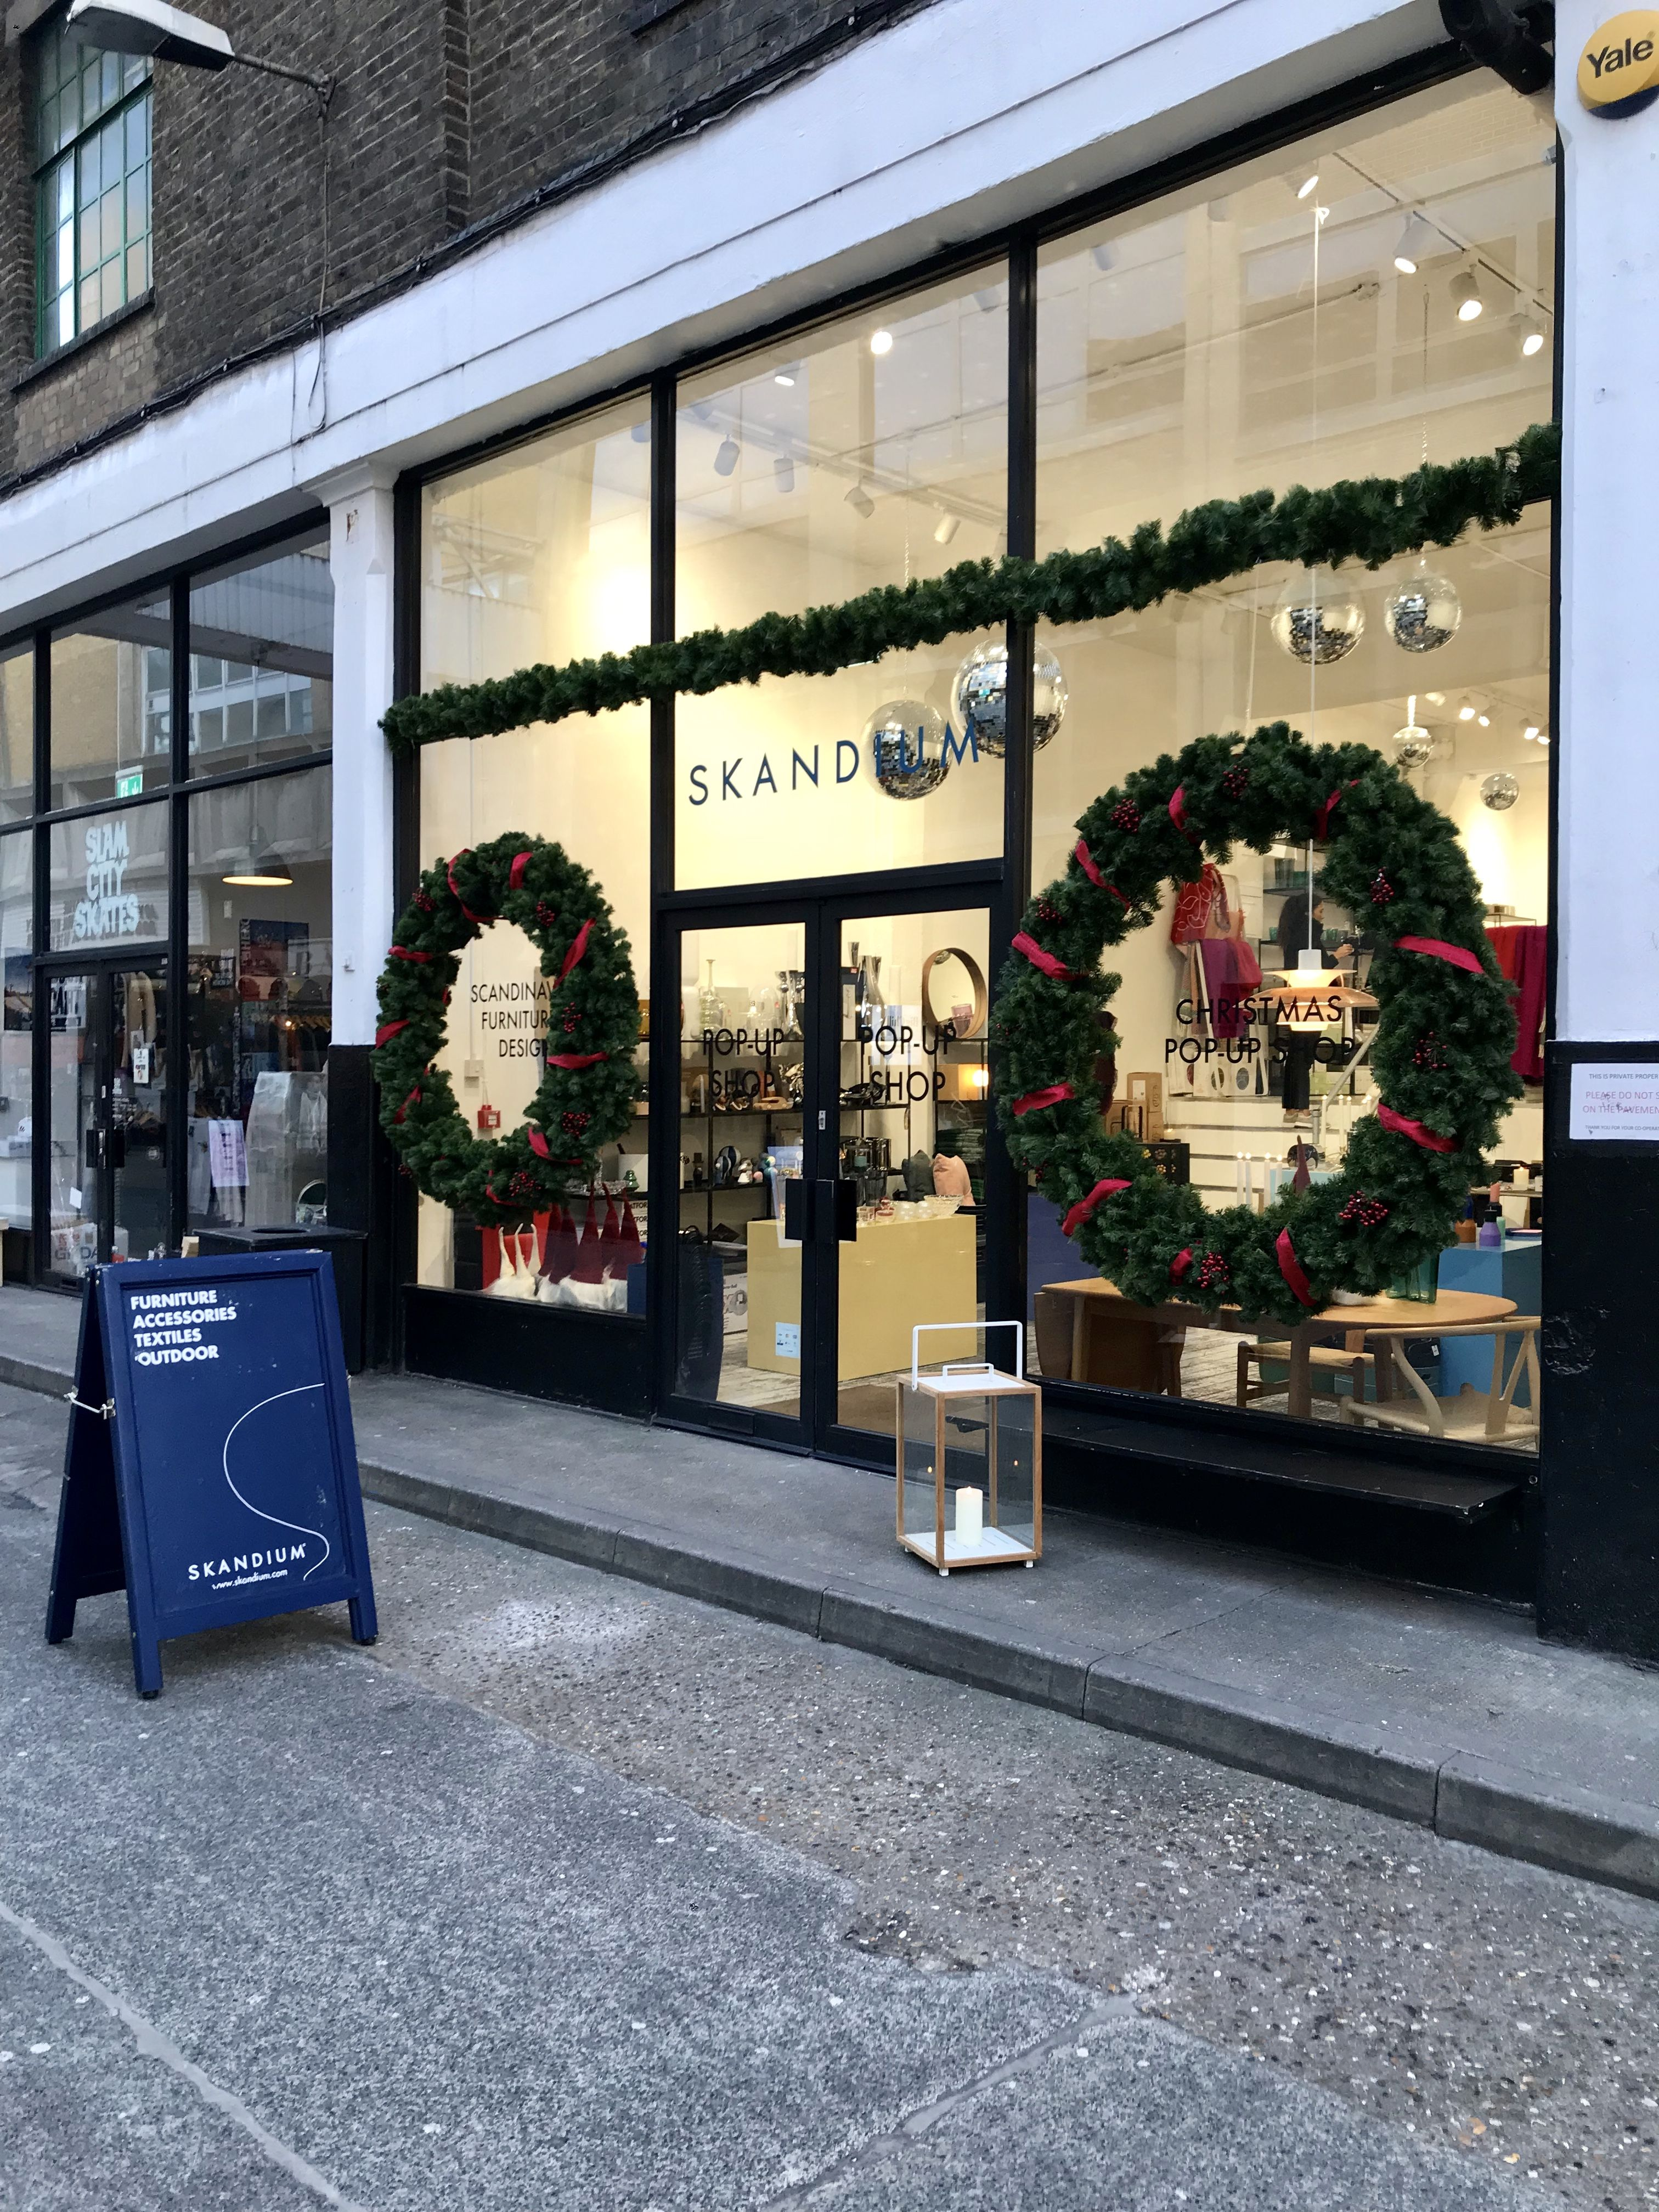 Skandium has opened a thoroughly festive Christmas pop-up in Shoreditch